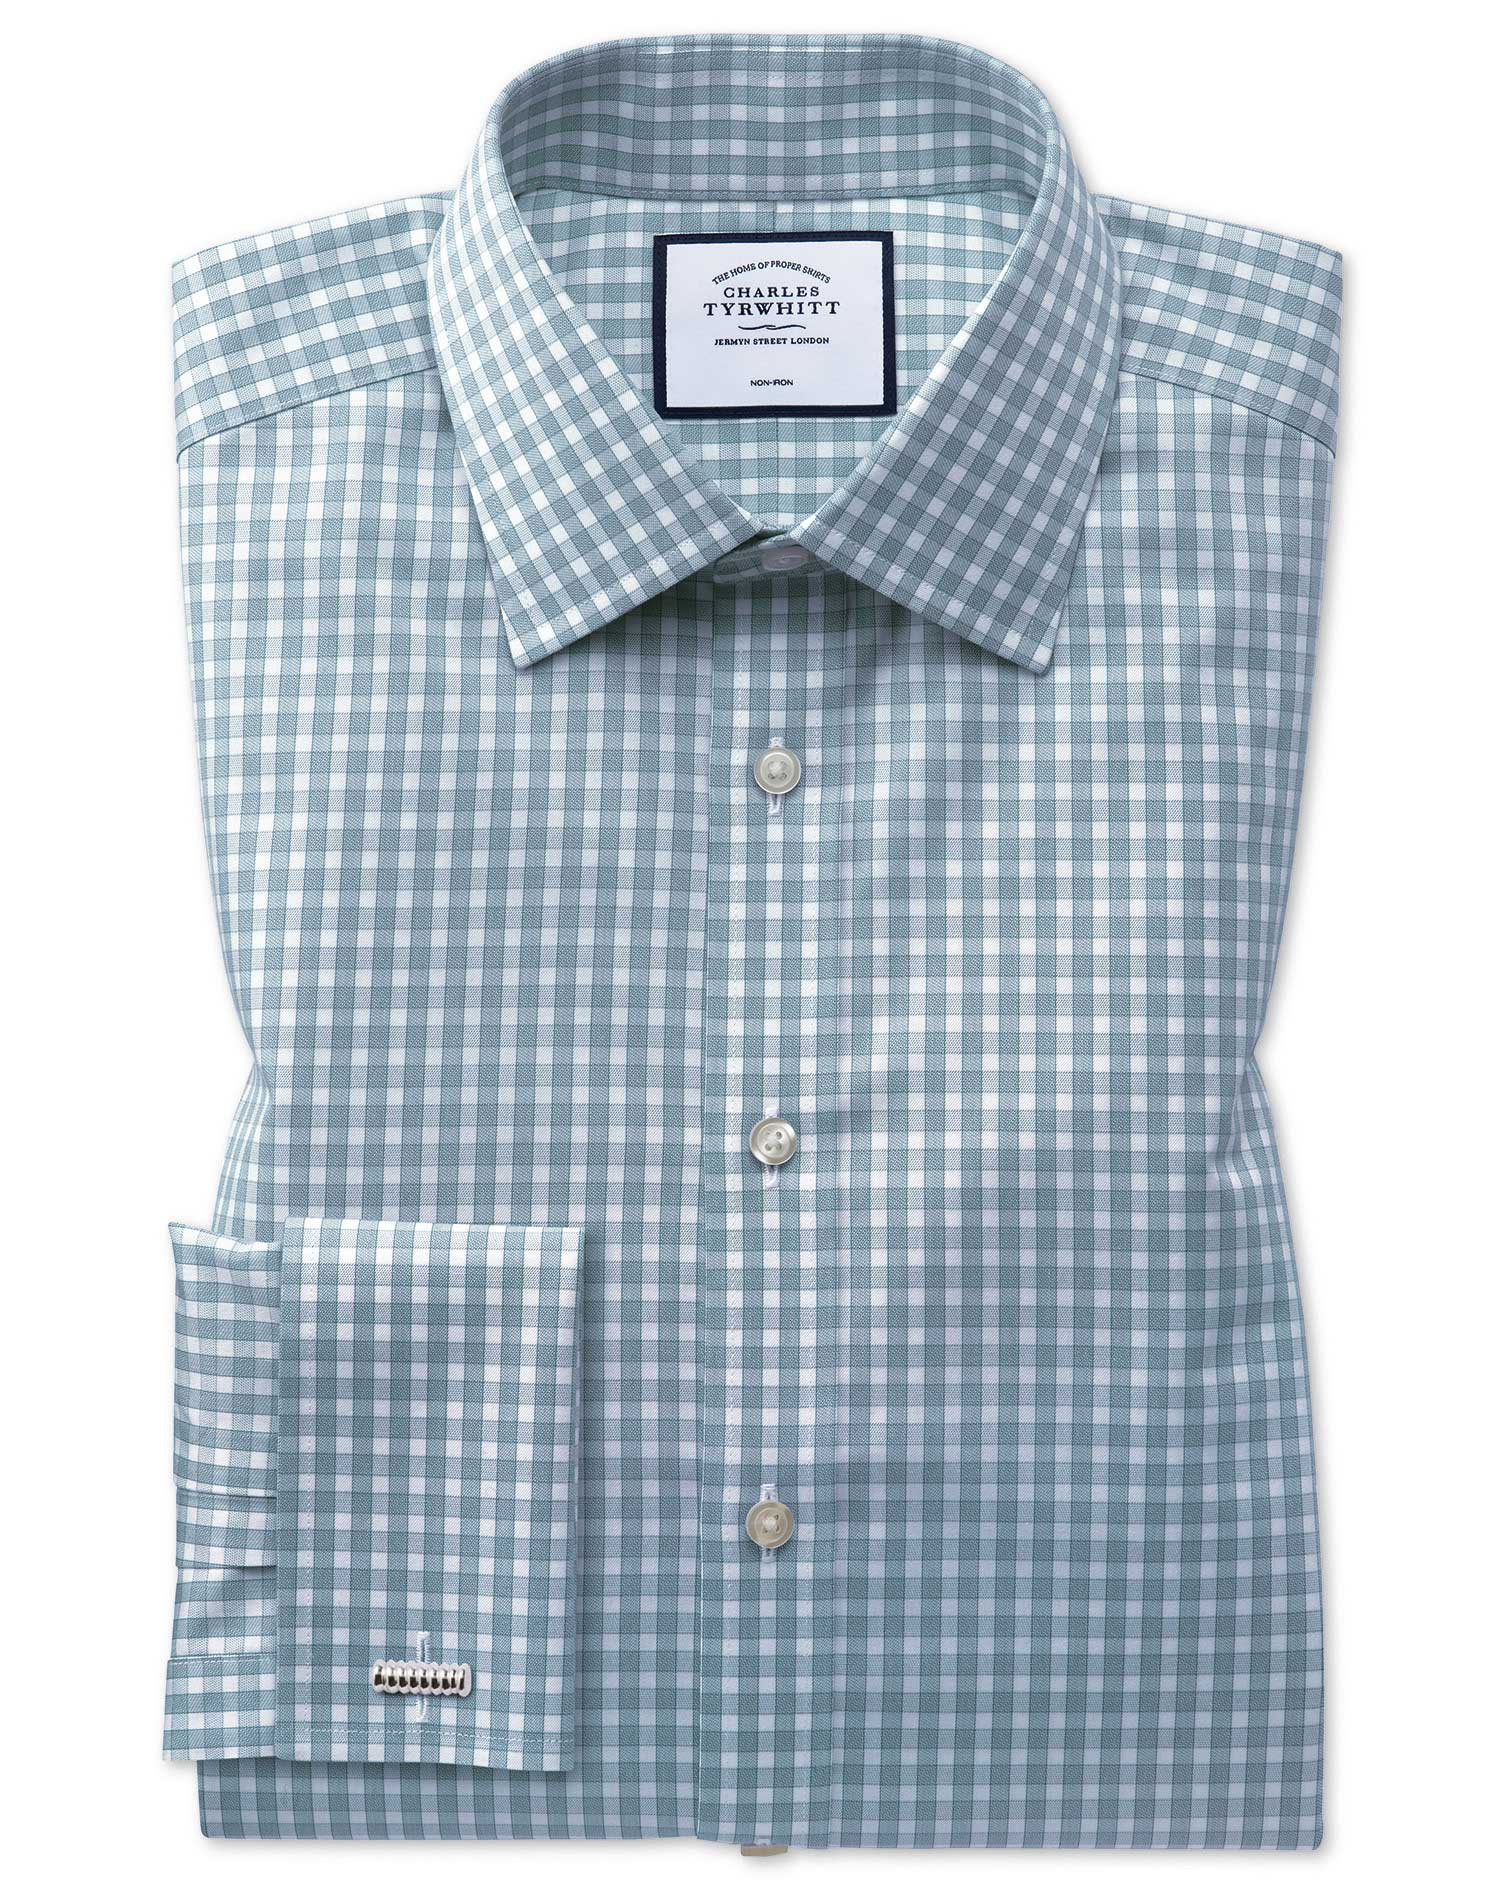 Classic Fit Non-Iron Twill Gingham Teal Cotton Formal Shirt Double Cuff Size 18/36 by Charles Tyrwhi